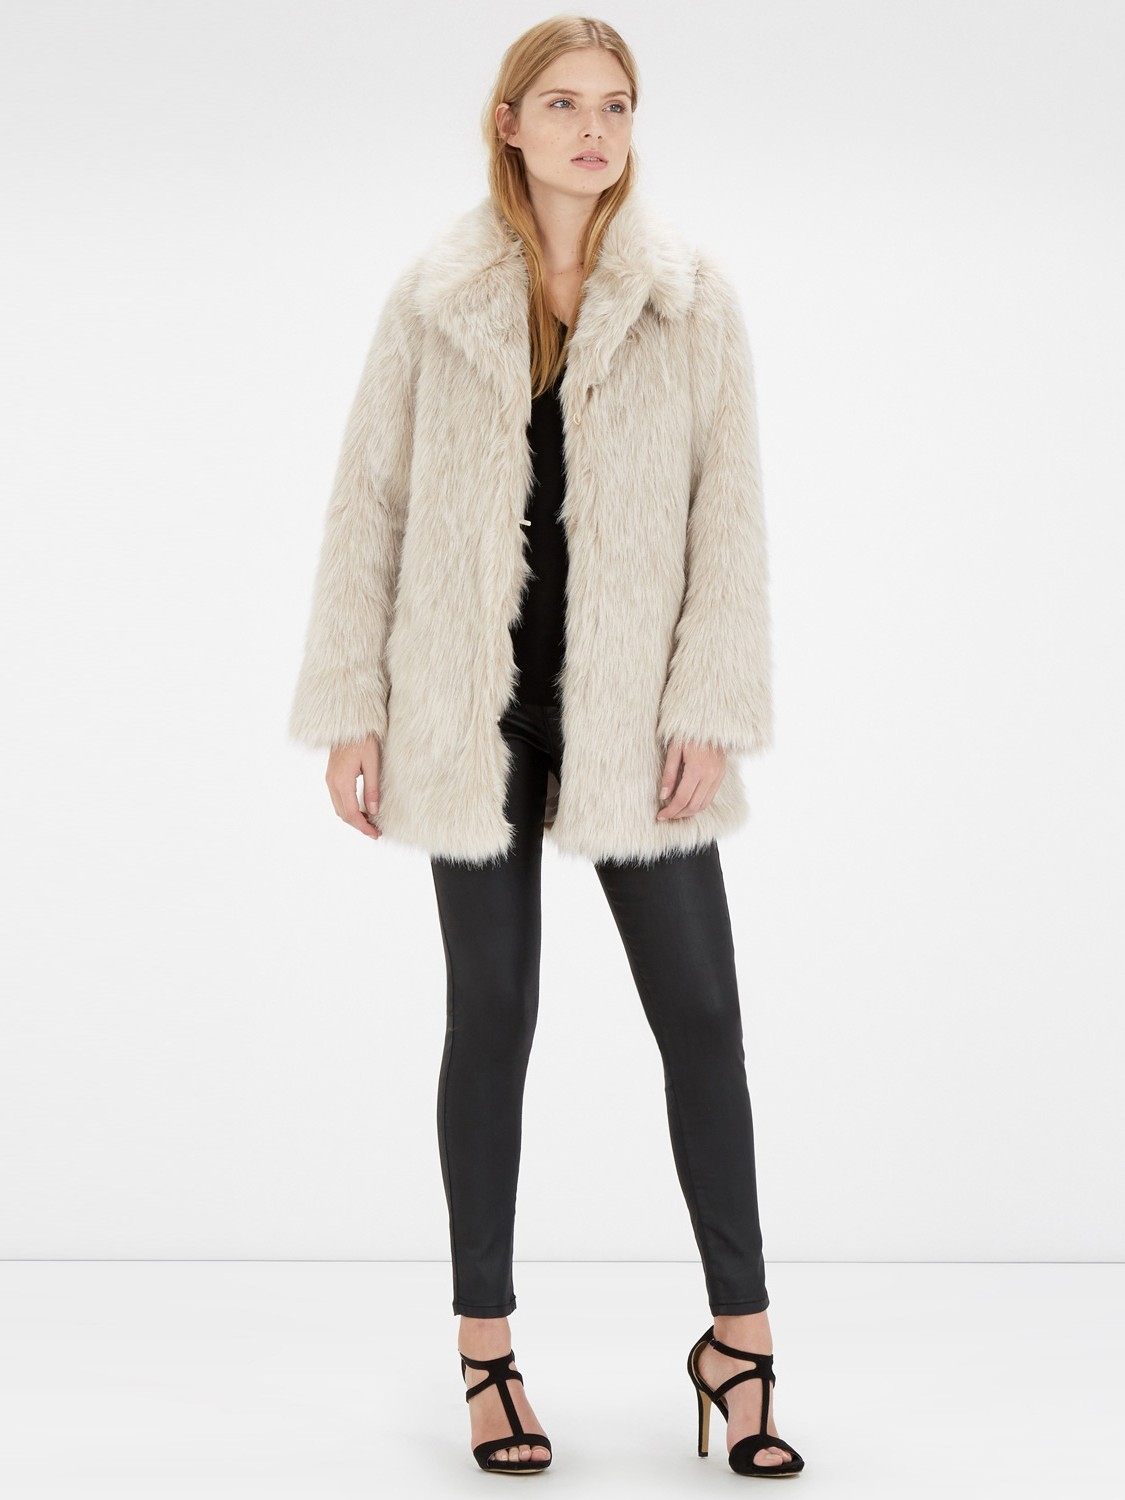 Faux Fur Coat Warehouse - Tradingbasis